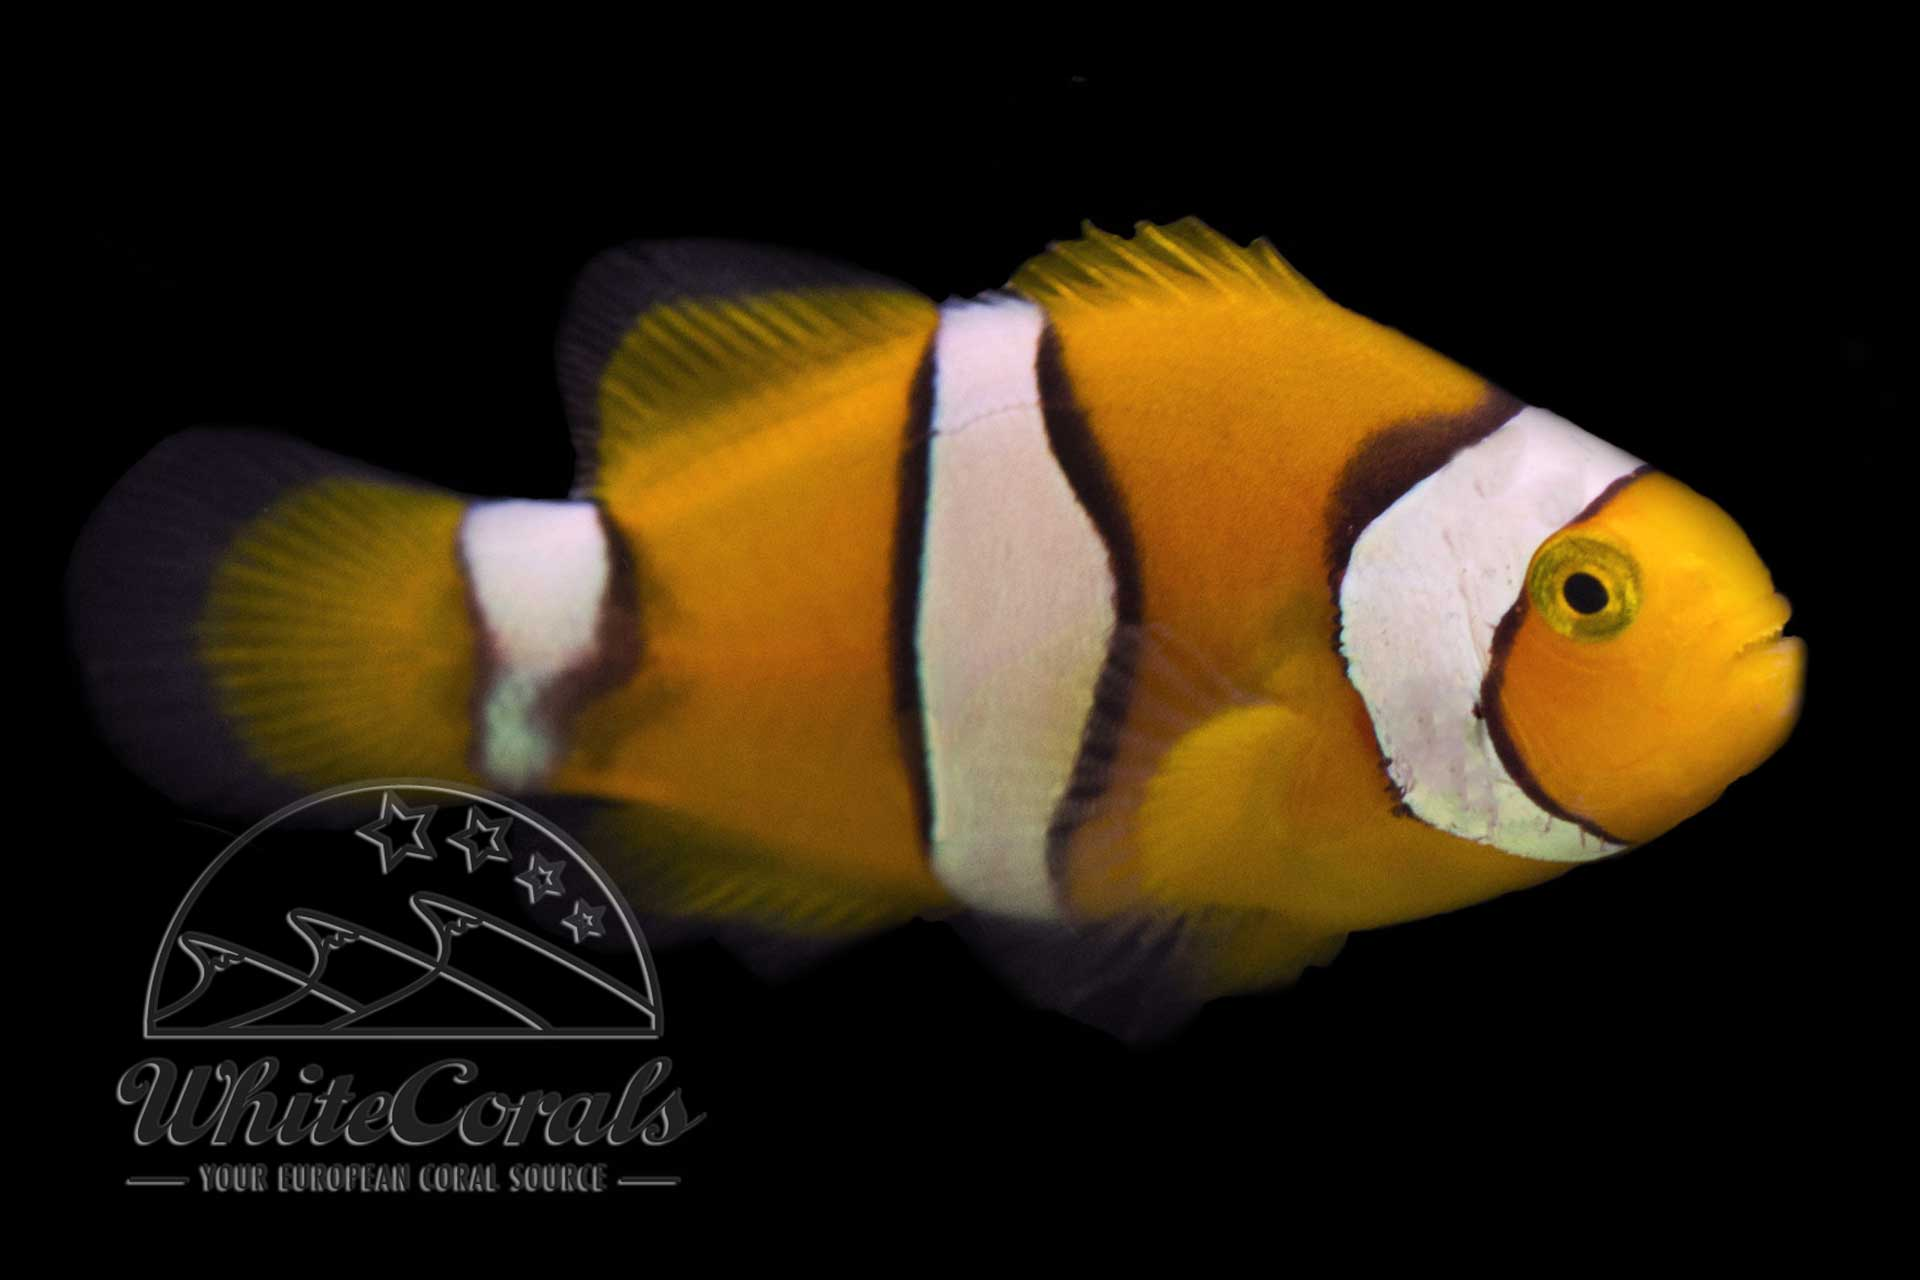 Amphiprion percula - Trauerband-Anemonenfisch